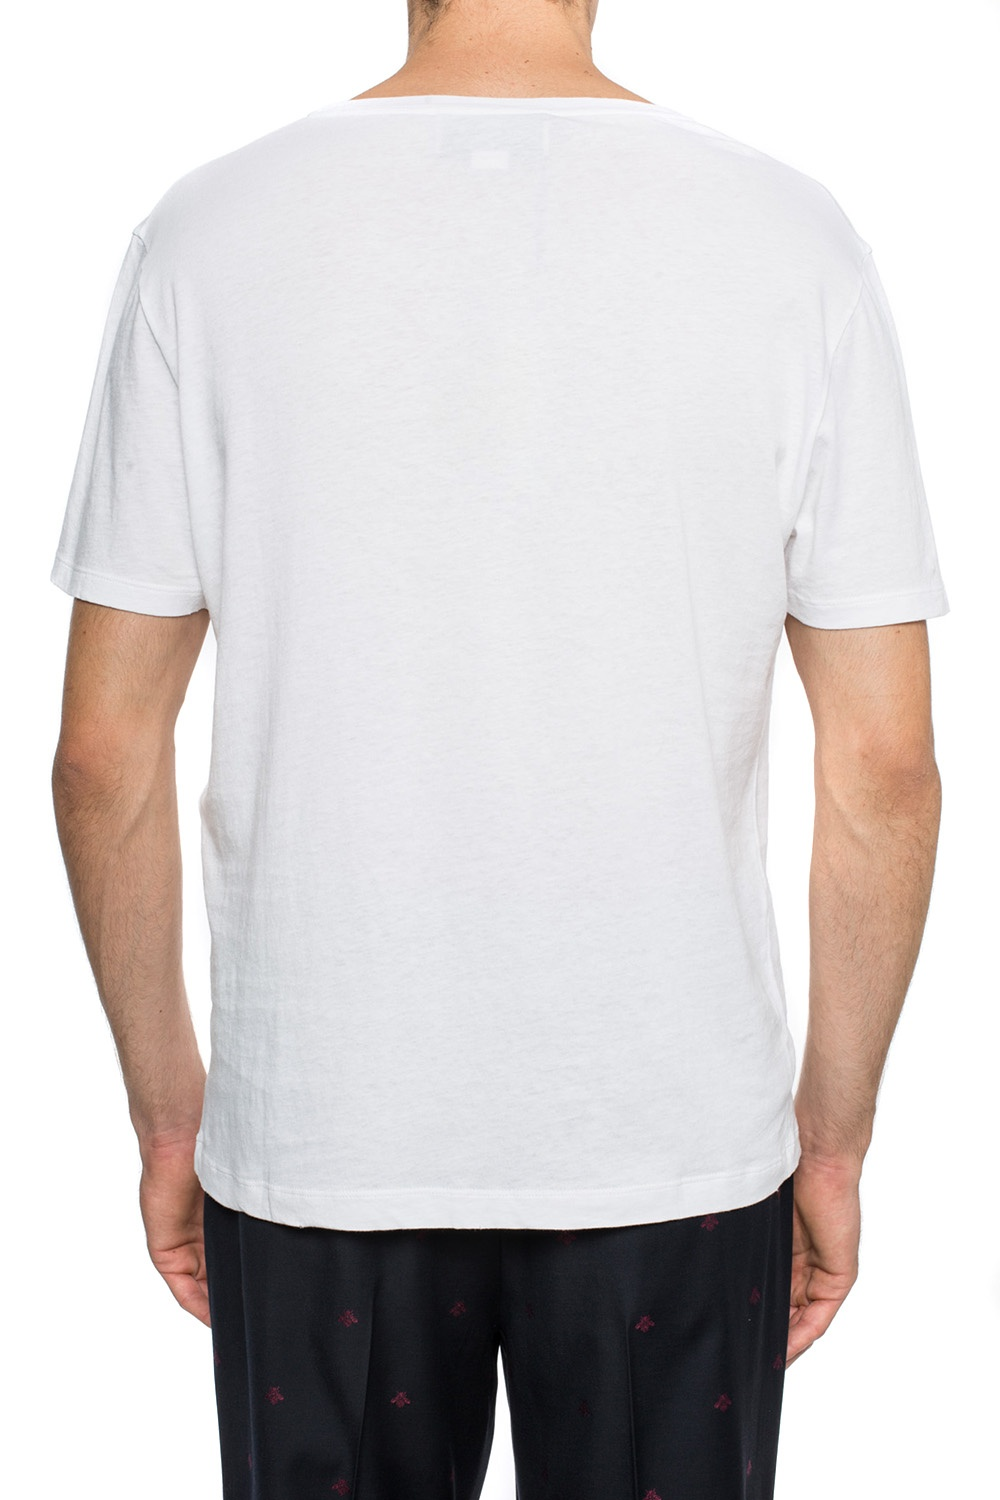 Gucci 'Web' T-shirt